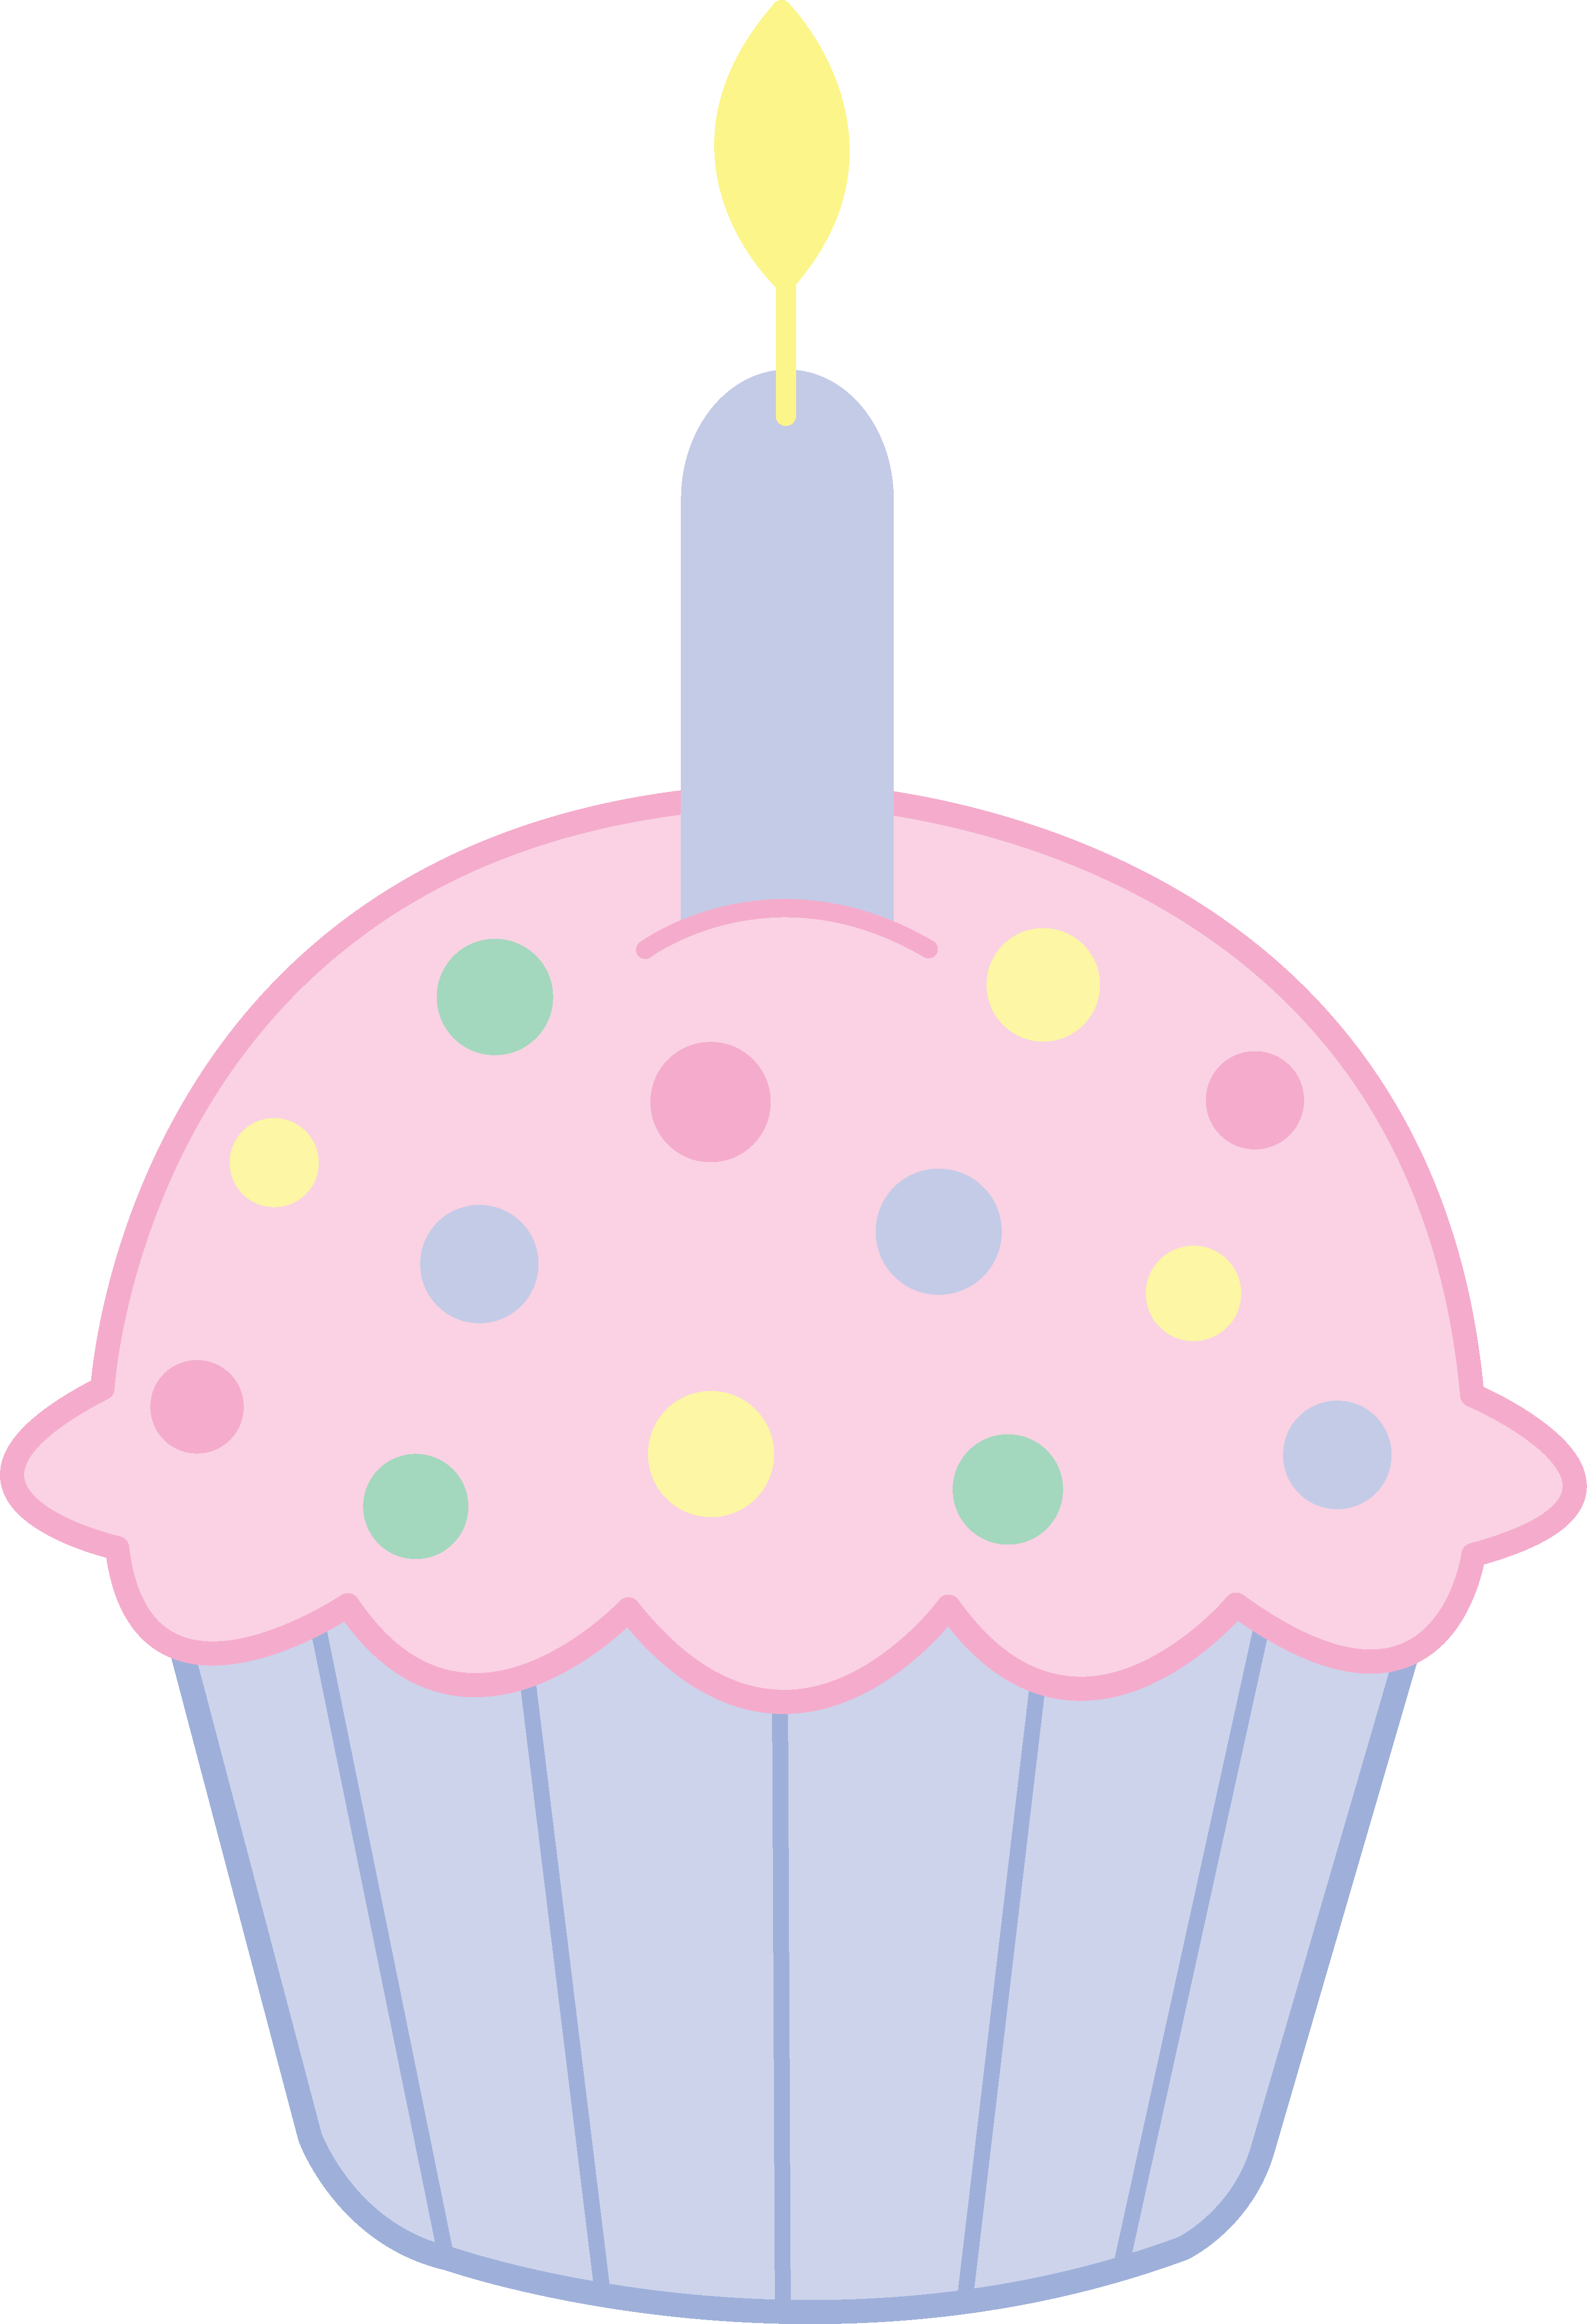 Cute Pink Birthday Cupcake - Free Clip Art clip art freeuse download